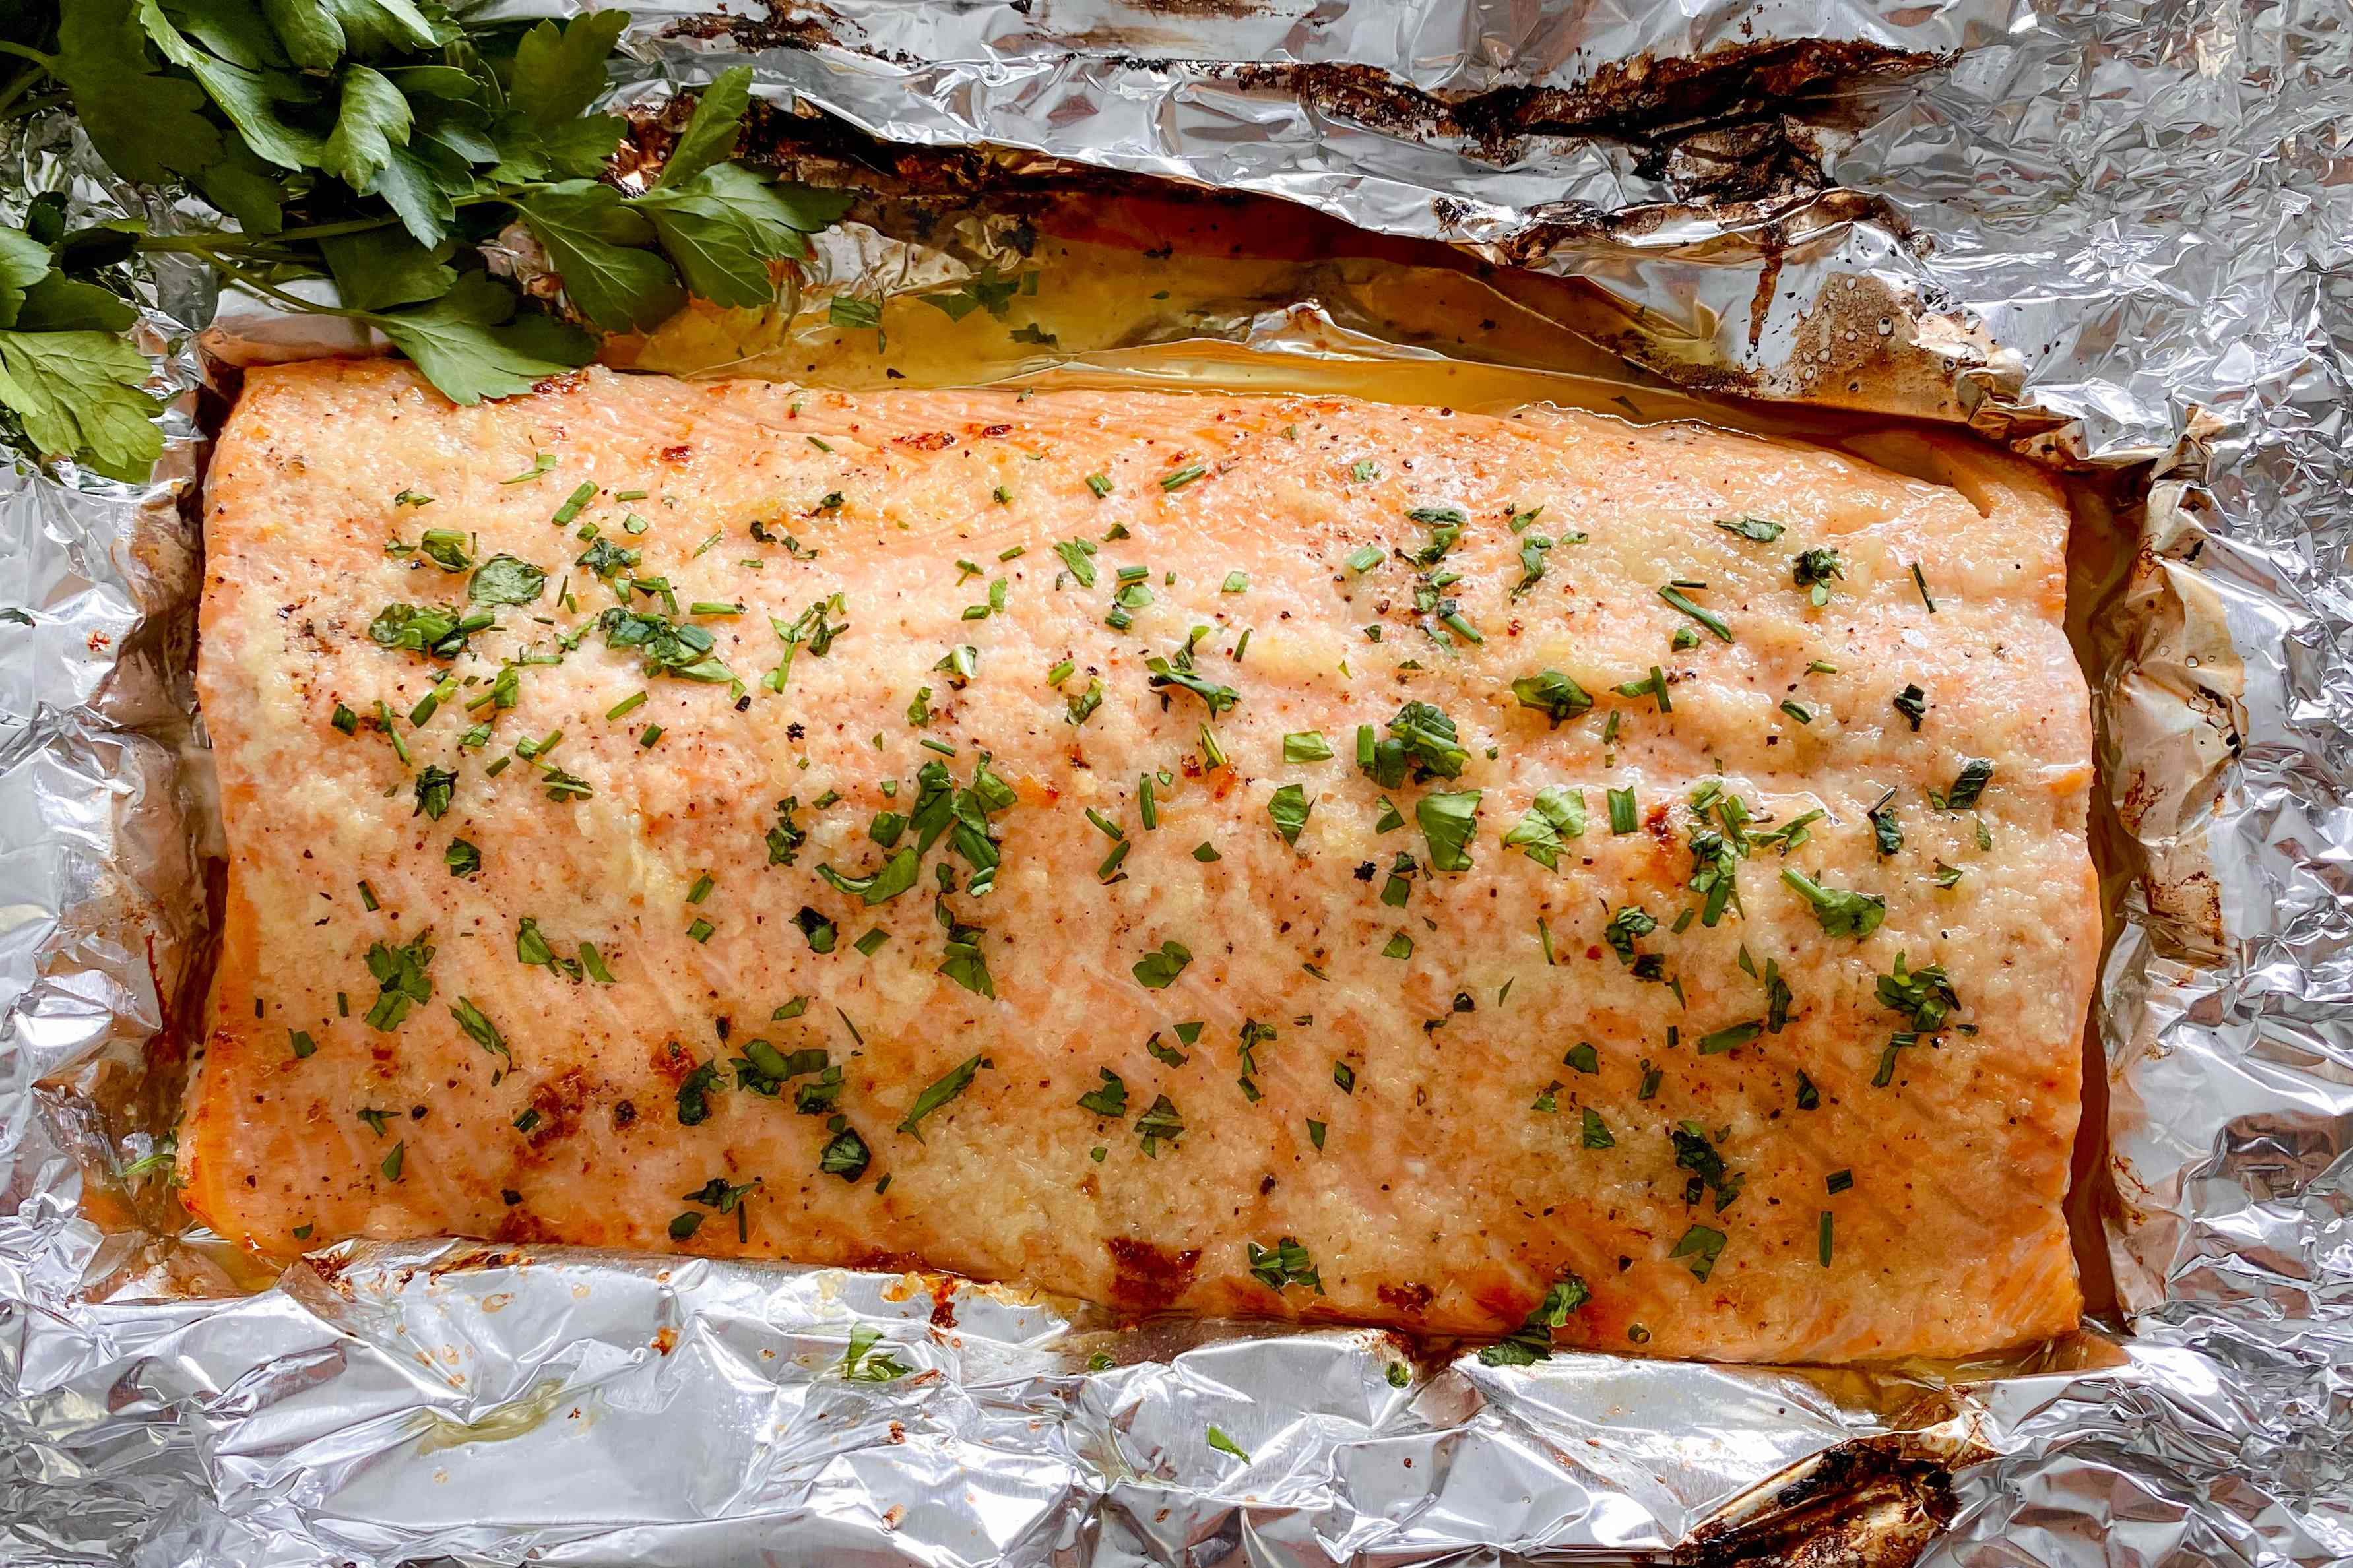 Honey Garlic Butter Roasted Salmon topped with herbs and set on foil.